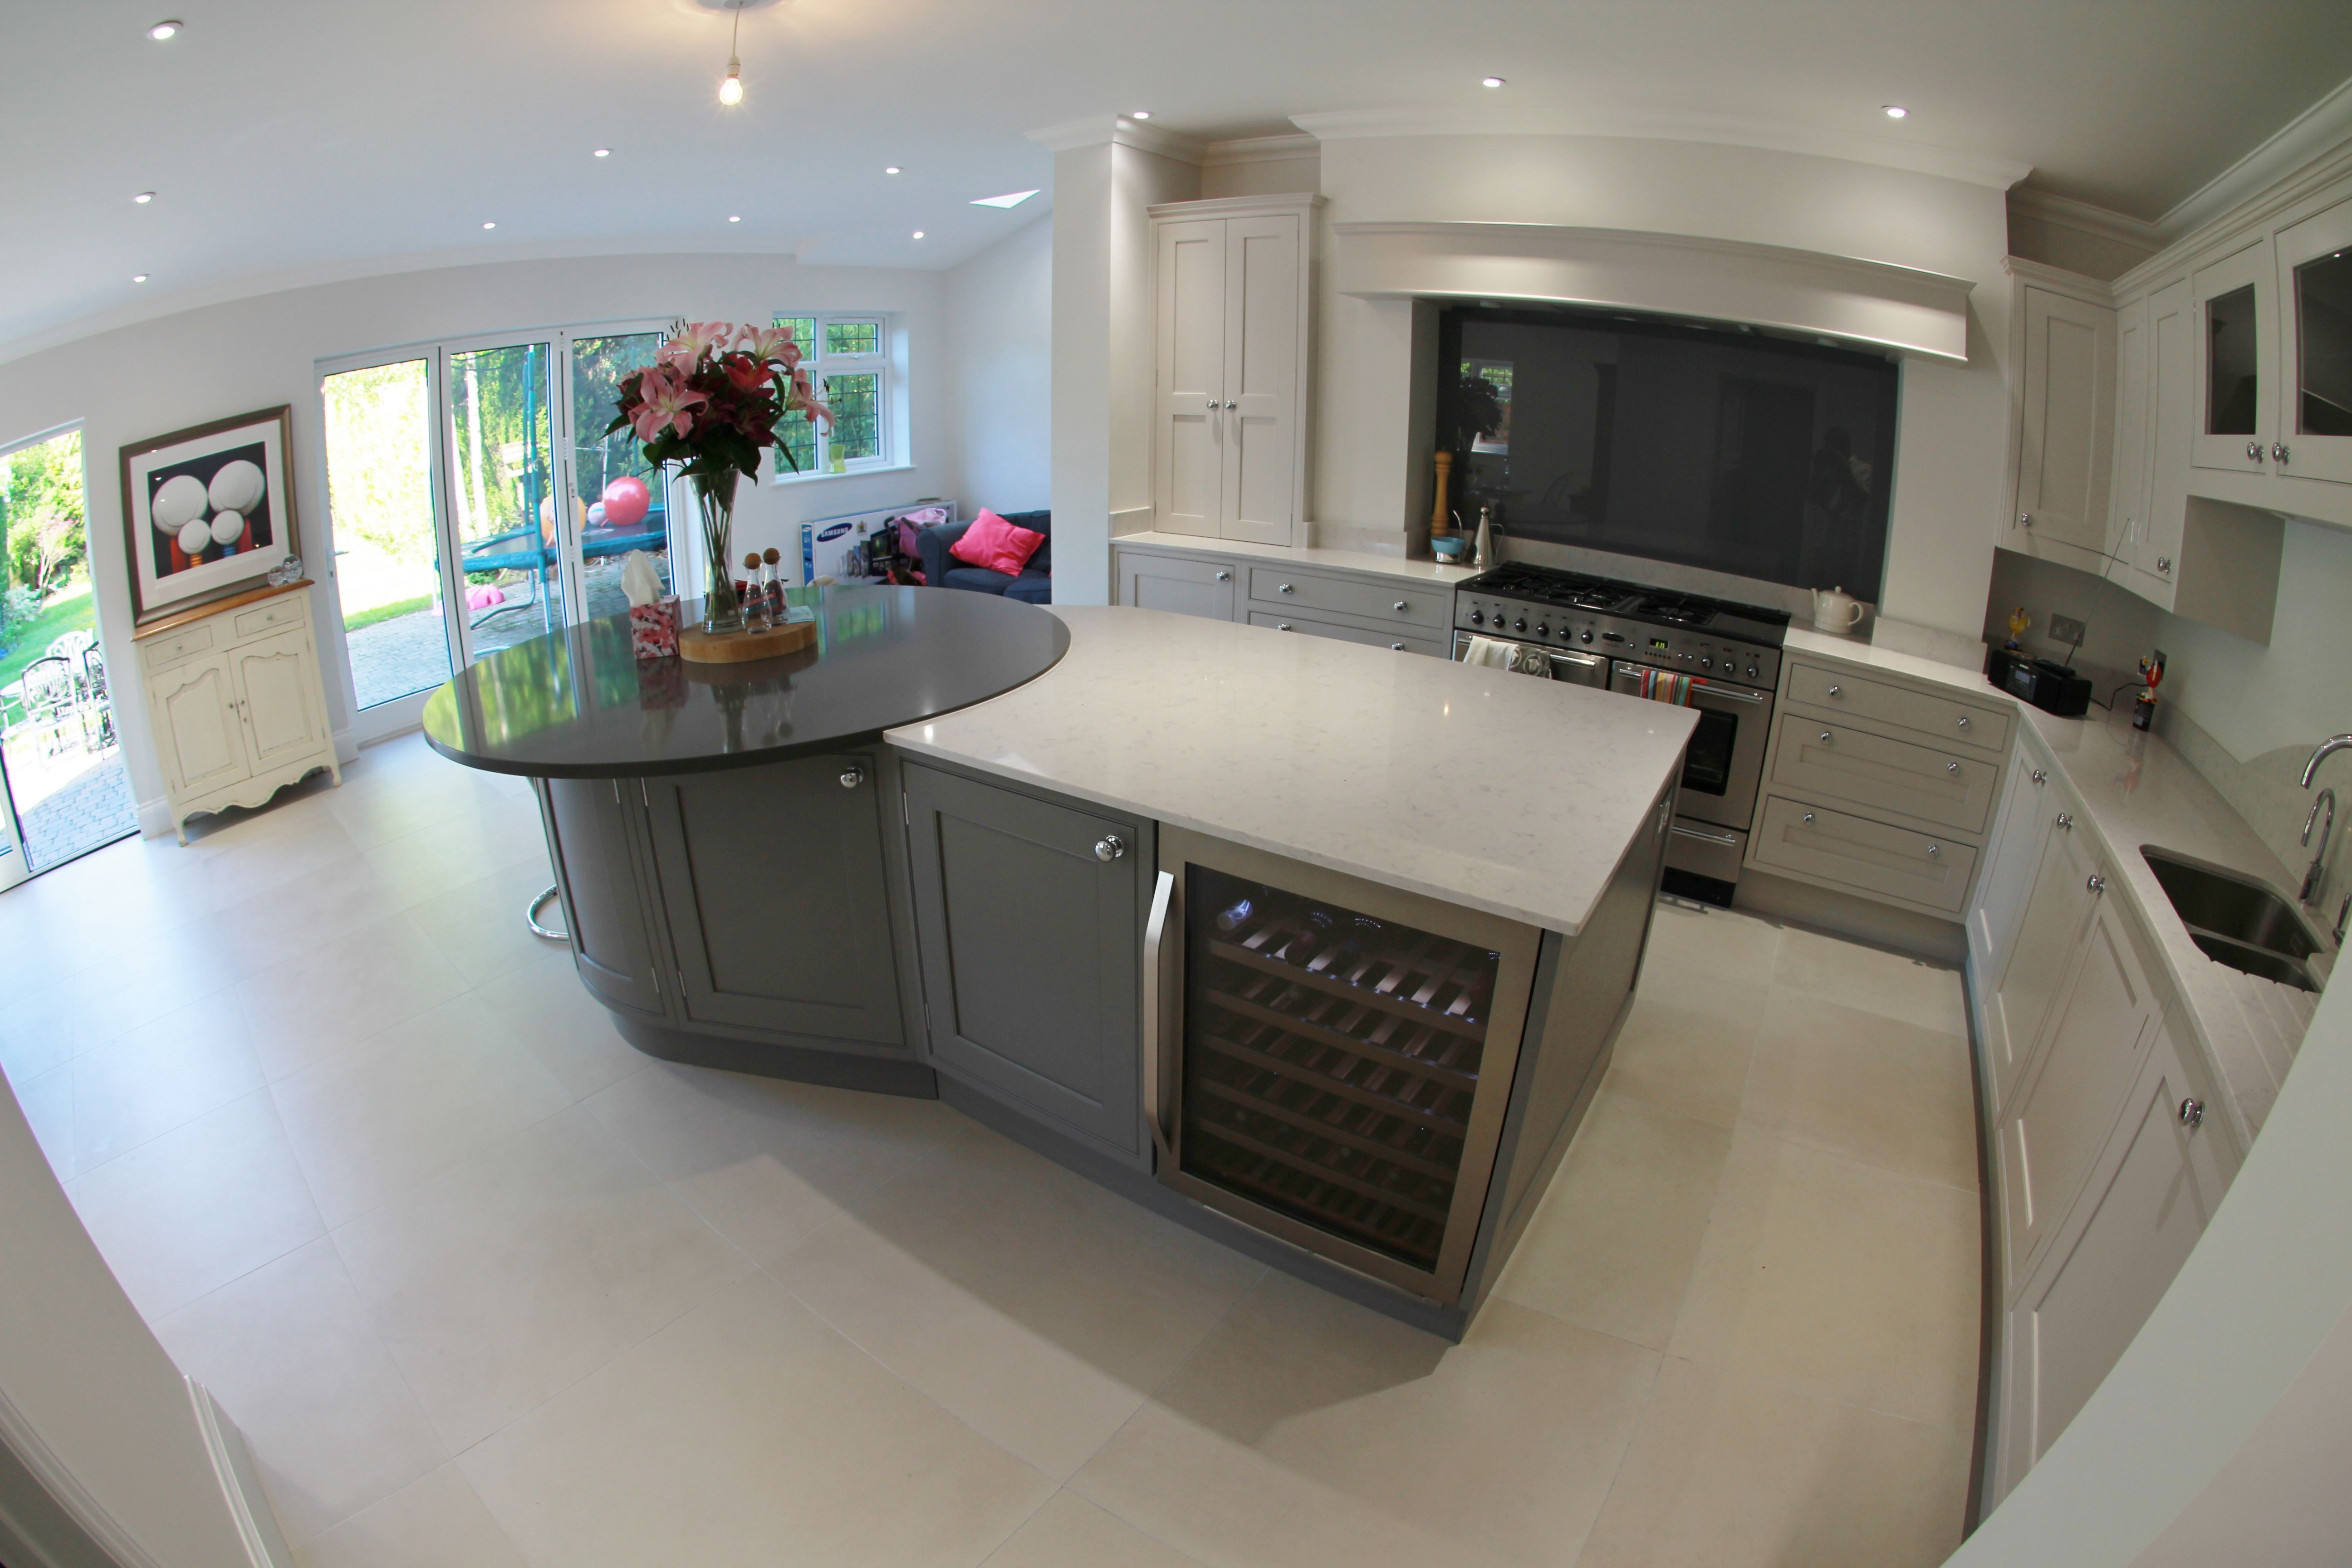 large kitchen island incorporating two different worktop shapes and colours includes wine. Black Bedroom Furniture Sets. Home Design Ideas